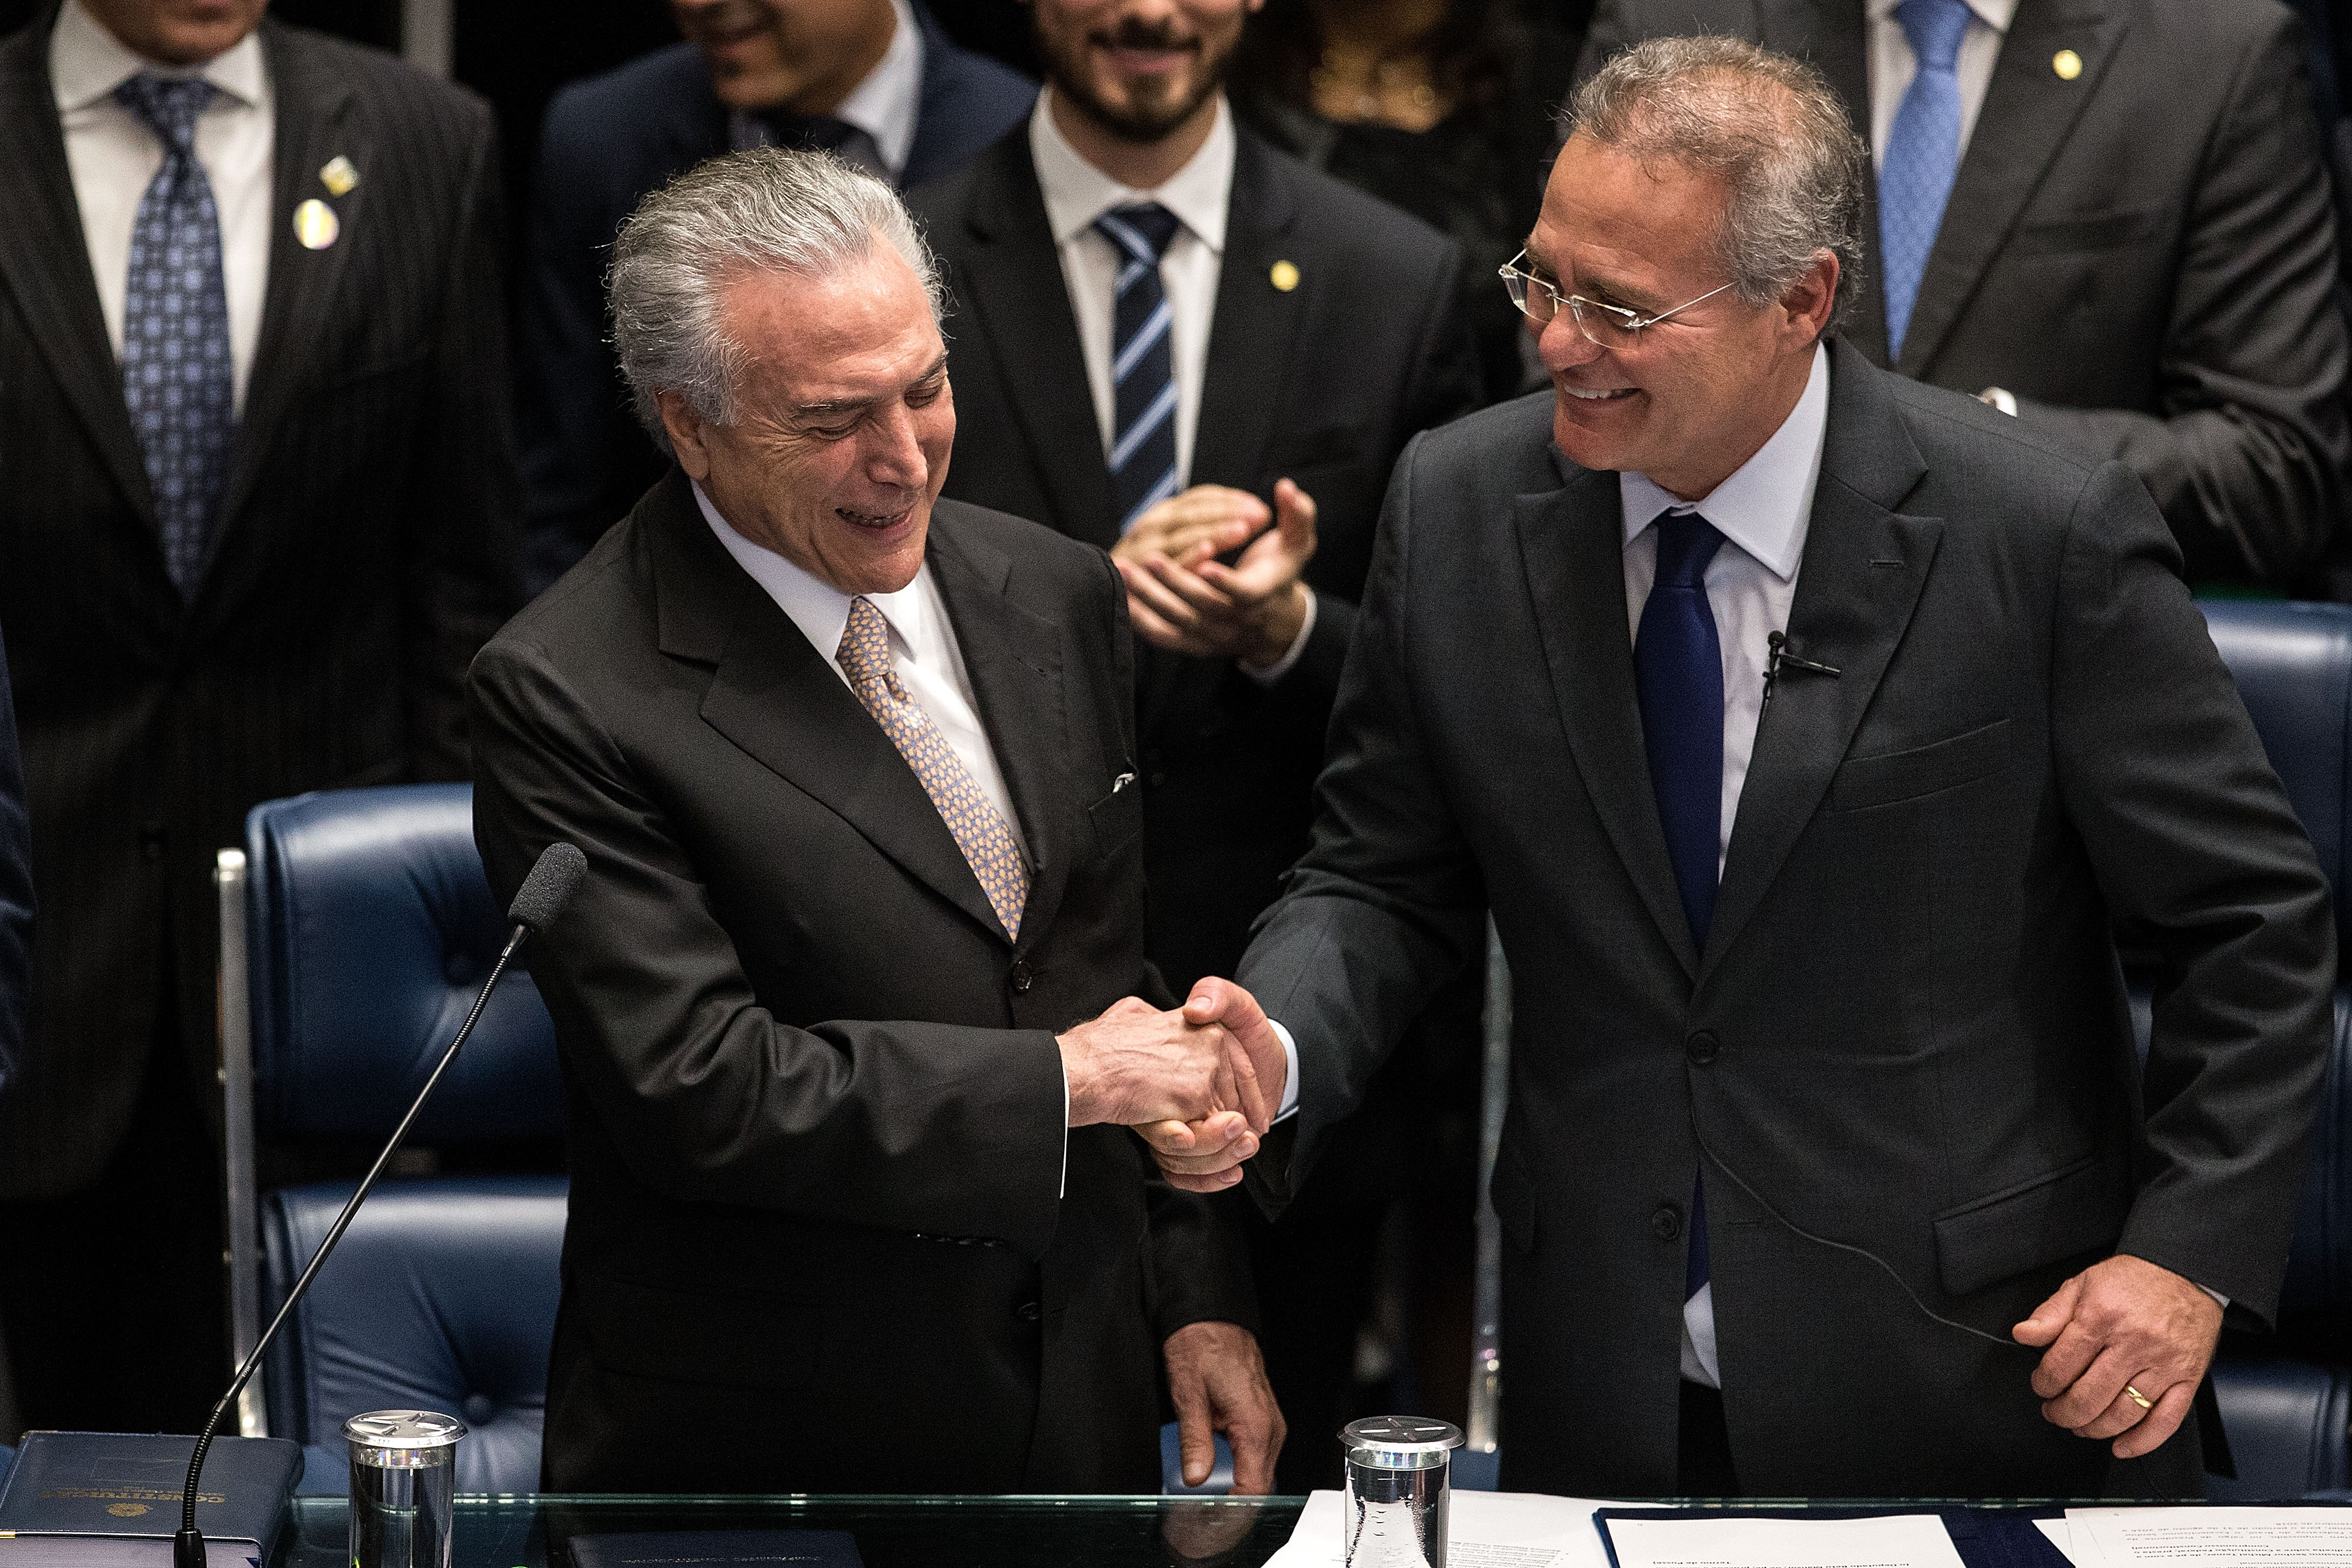 Michel Temer (L) shakes hands with Brazilian Senate President Renan Calheiros during his swear-in ceremony as President of Brazil in Brasilia, Brazil, Aug. 31, 2016.